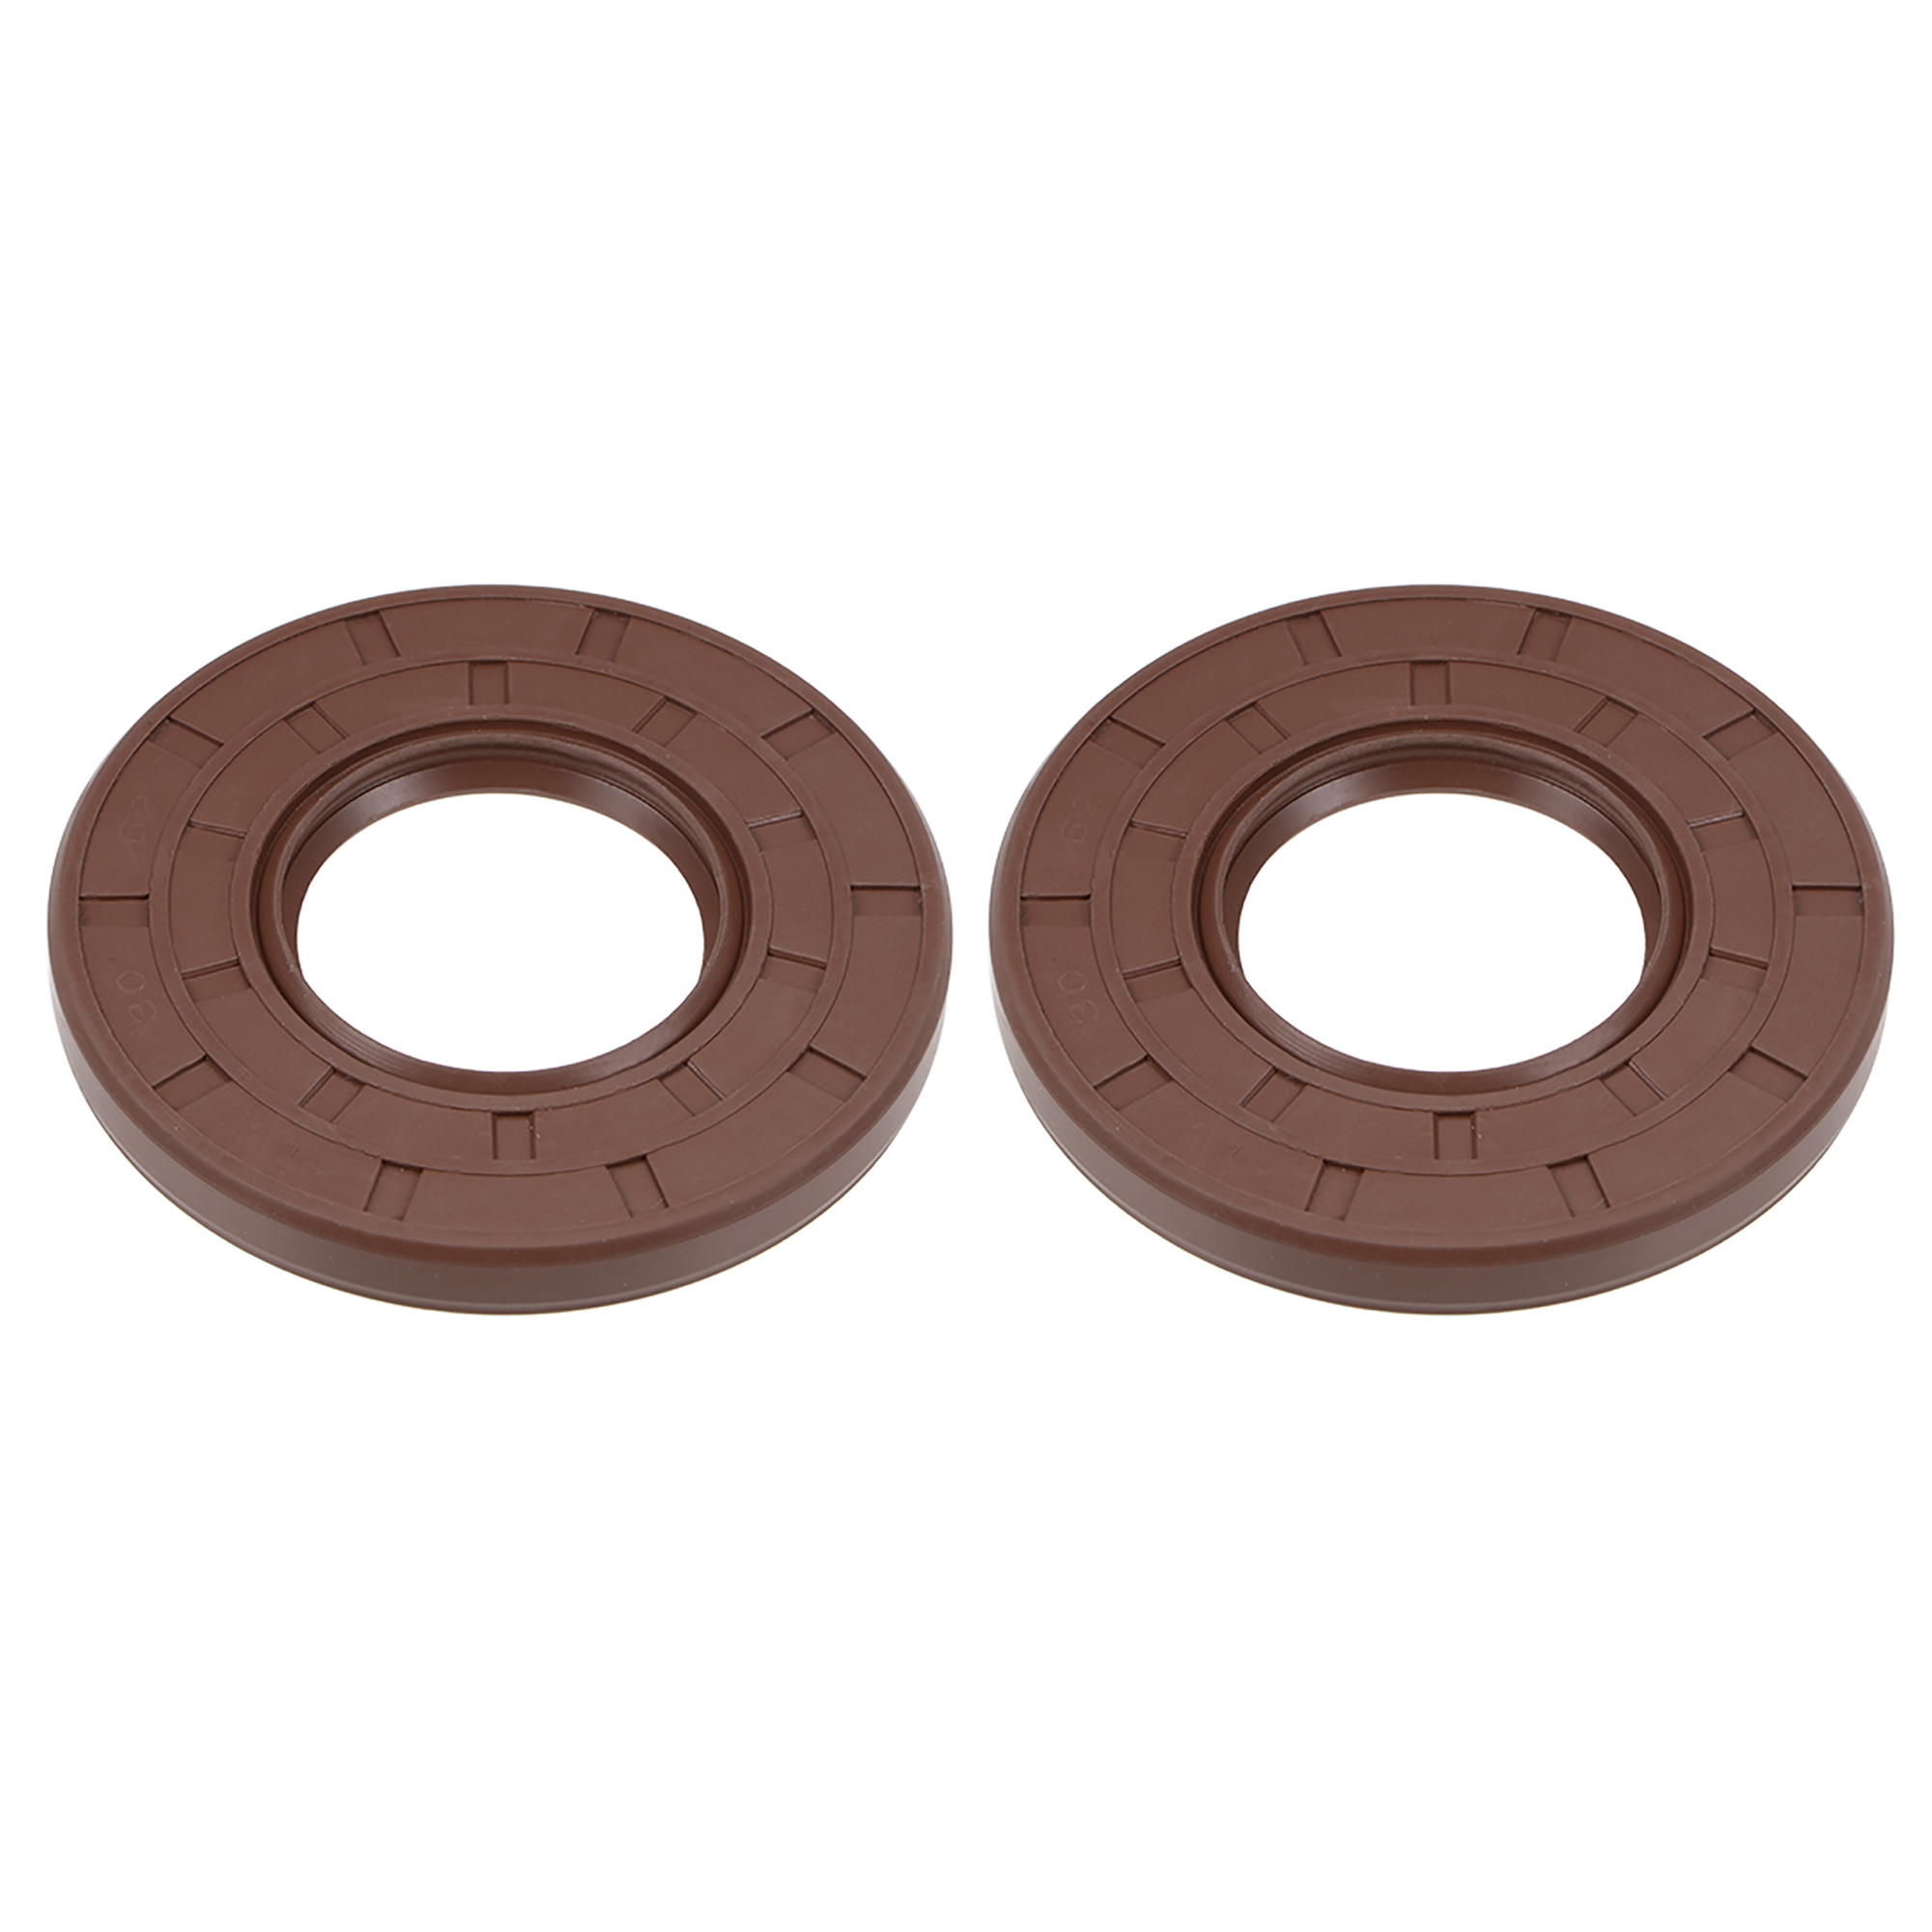 Oil Seal 30mm Inner Dia 62mm OD 7mm Thick Fluorine Rubber Double Lip Seals